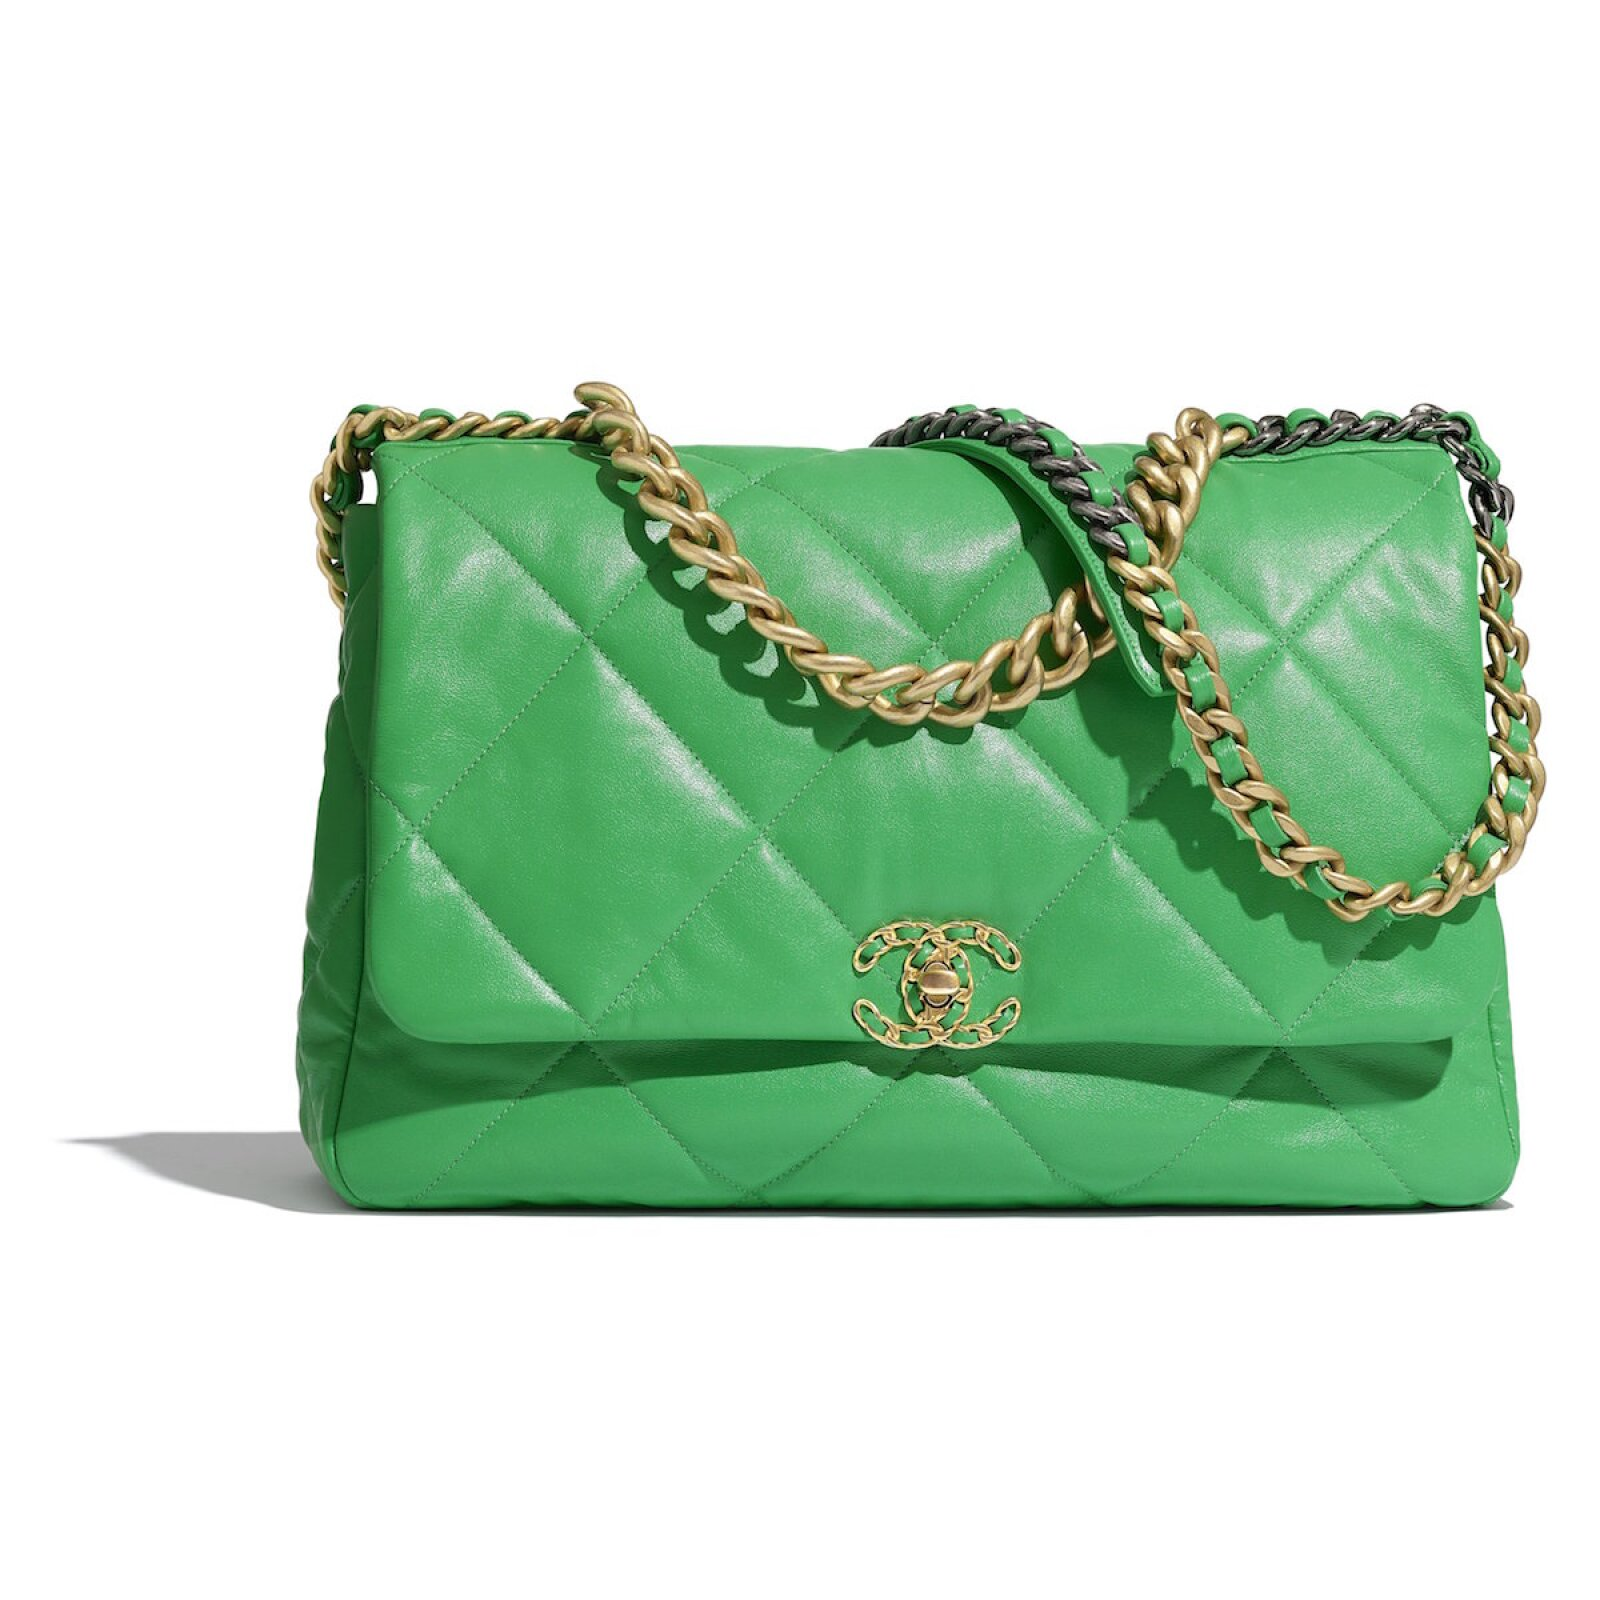 CHANEL05_AS1162_B02875_N6512_The_CHANEL_19_bag_in_green_leather.jpg